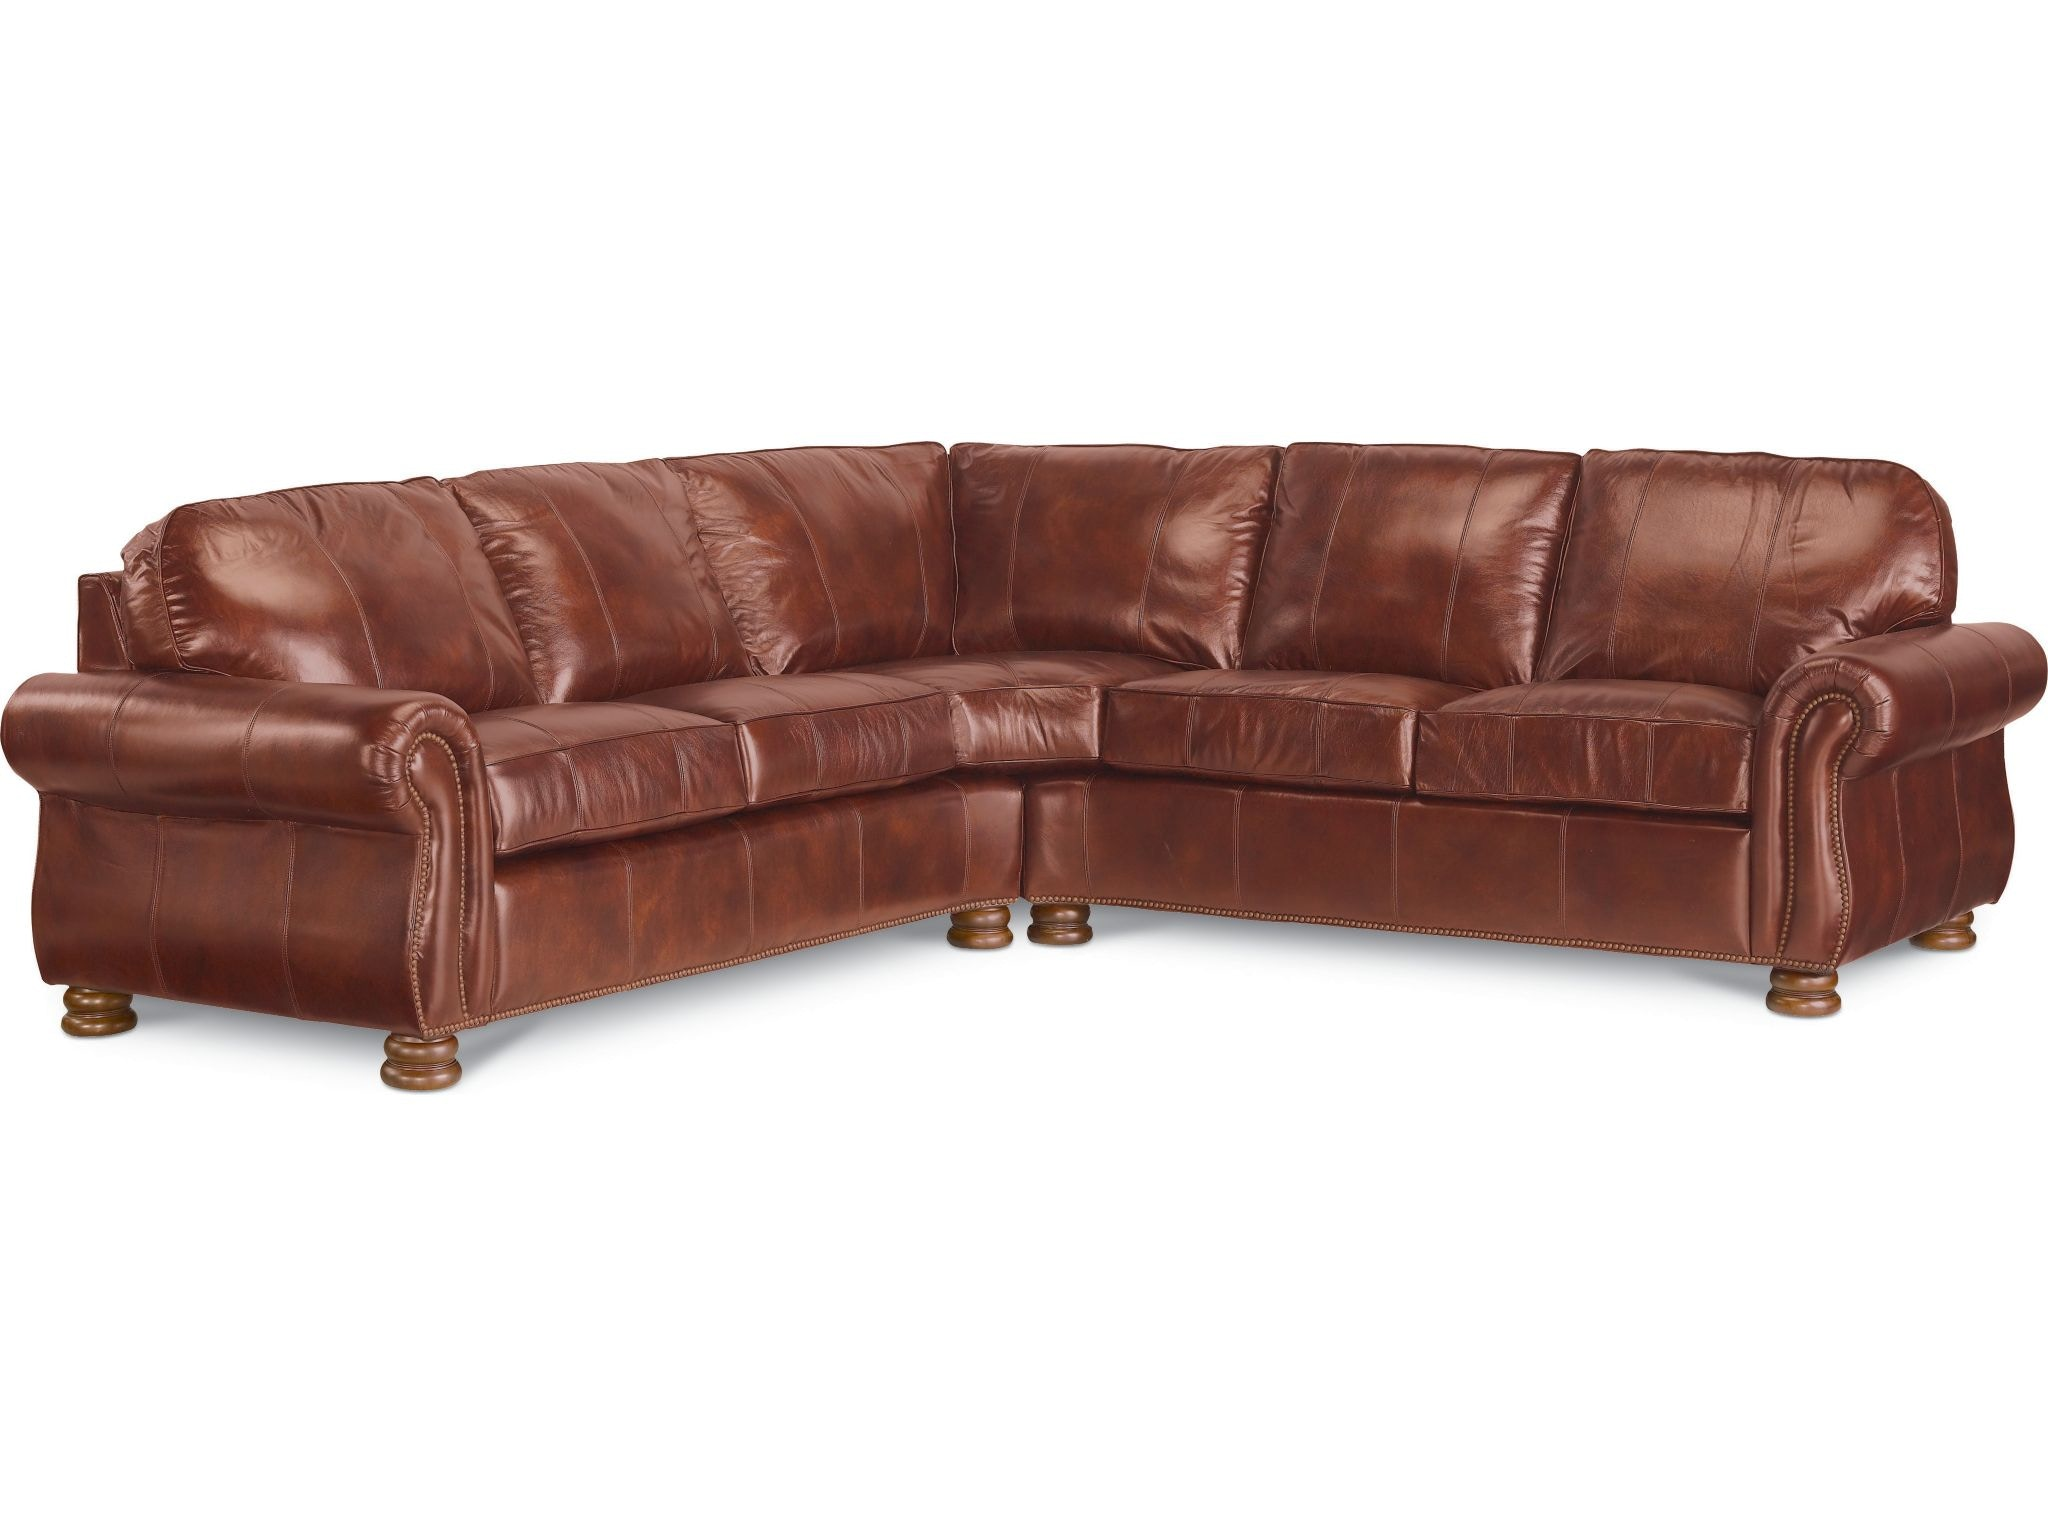 thomasville benjamin sofa small modern tables living room sectional hs1462 sect